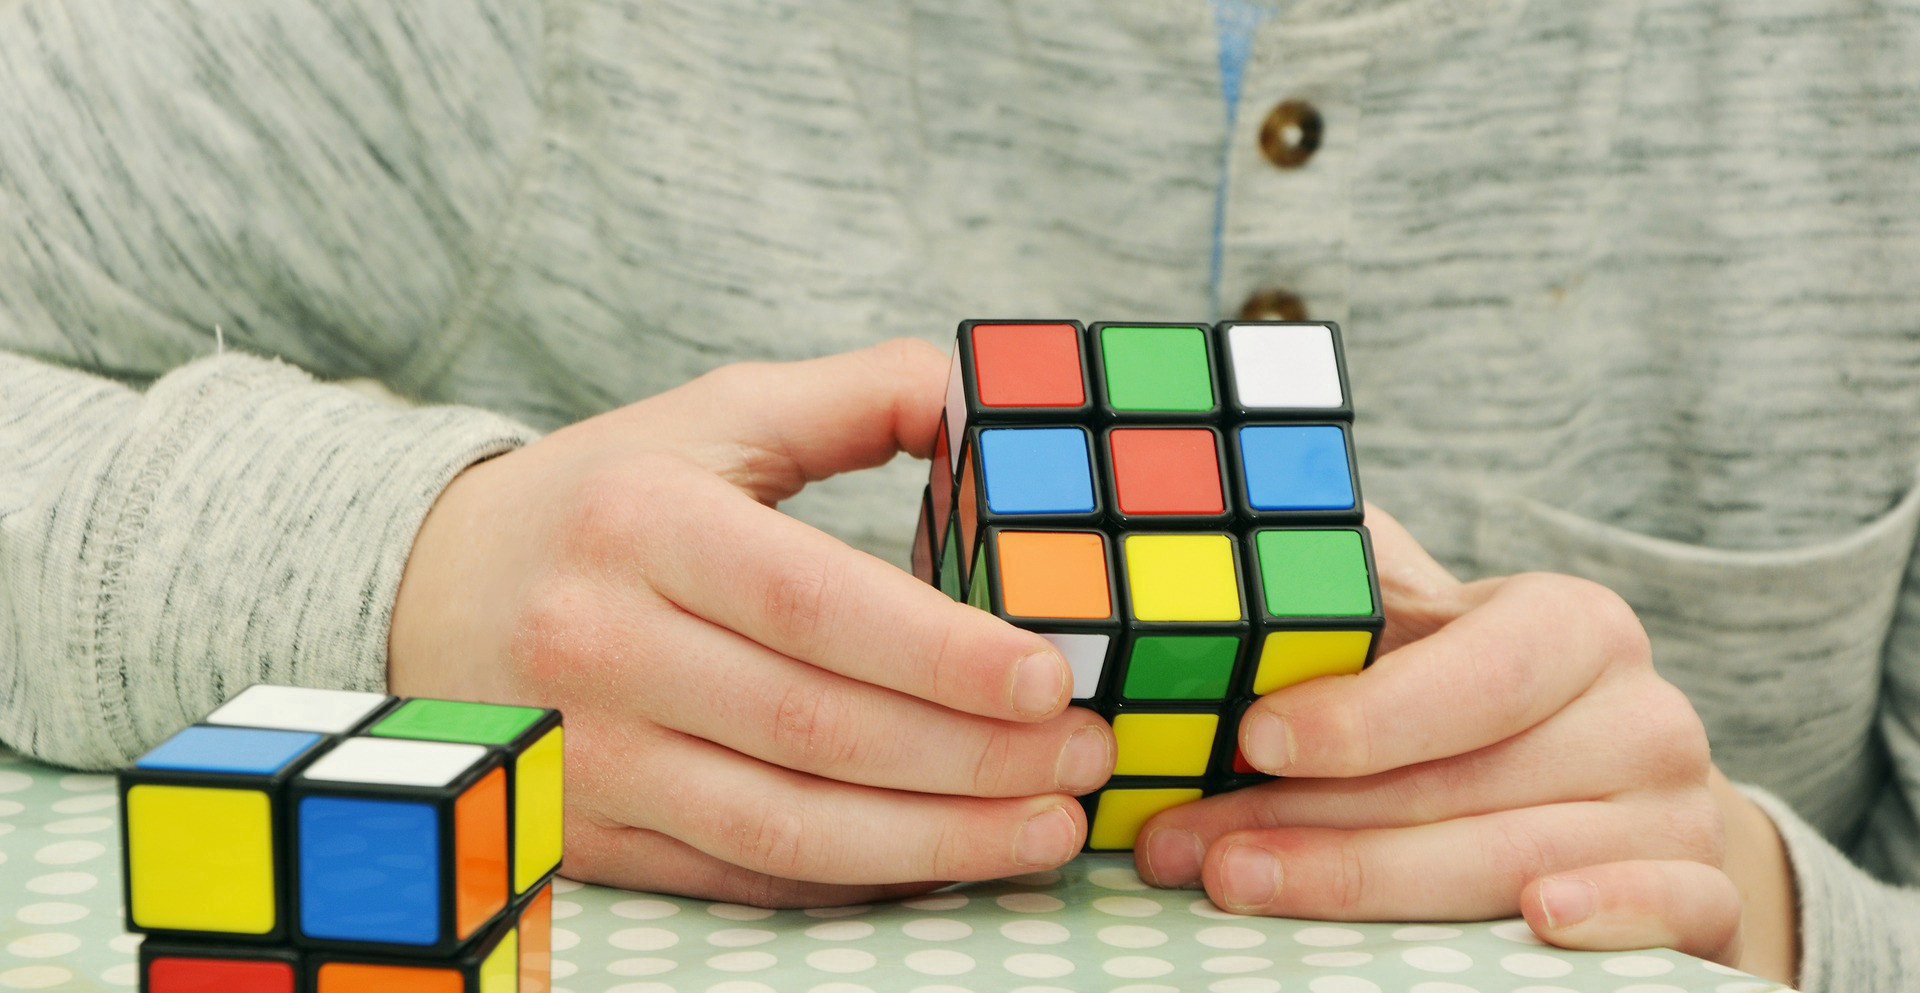 a person playing a rubik square game